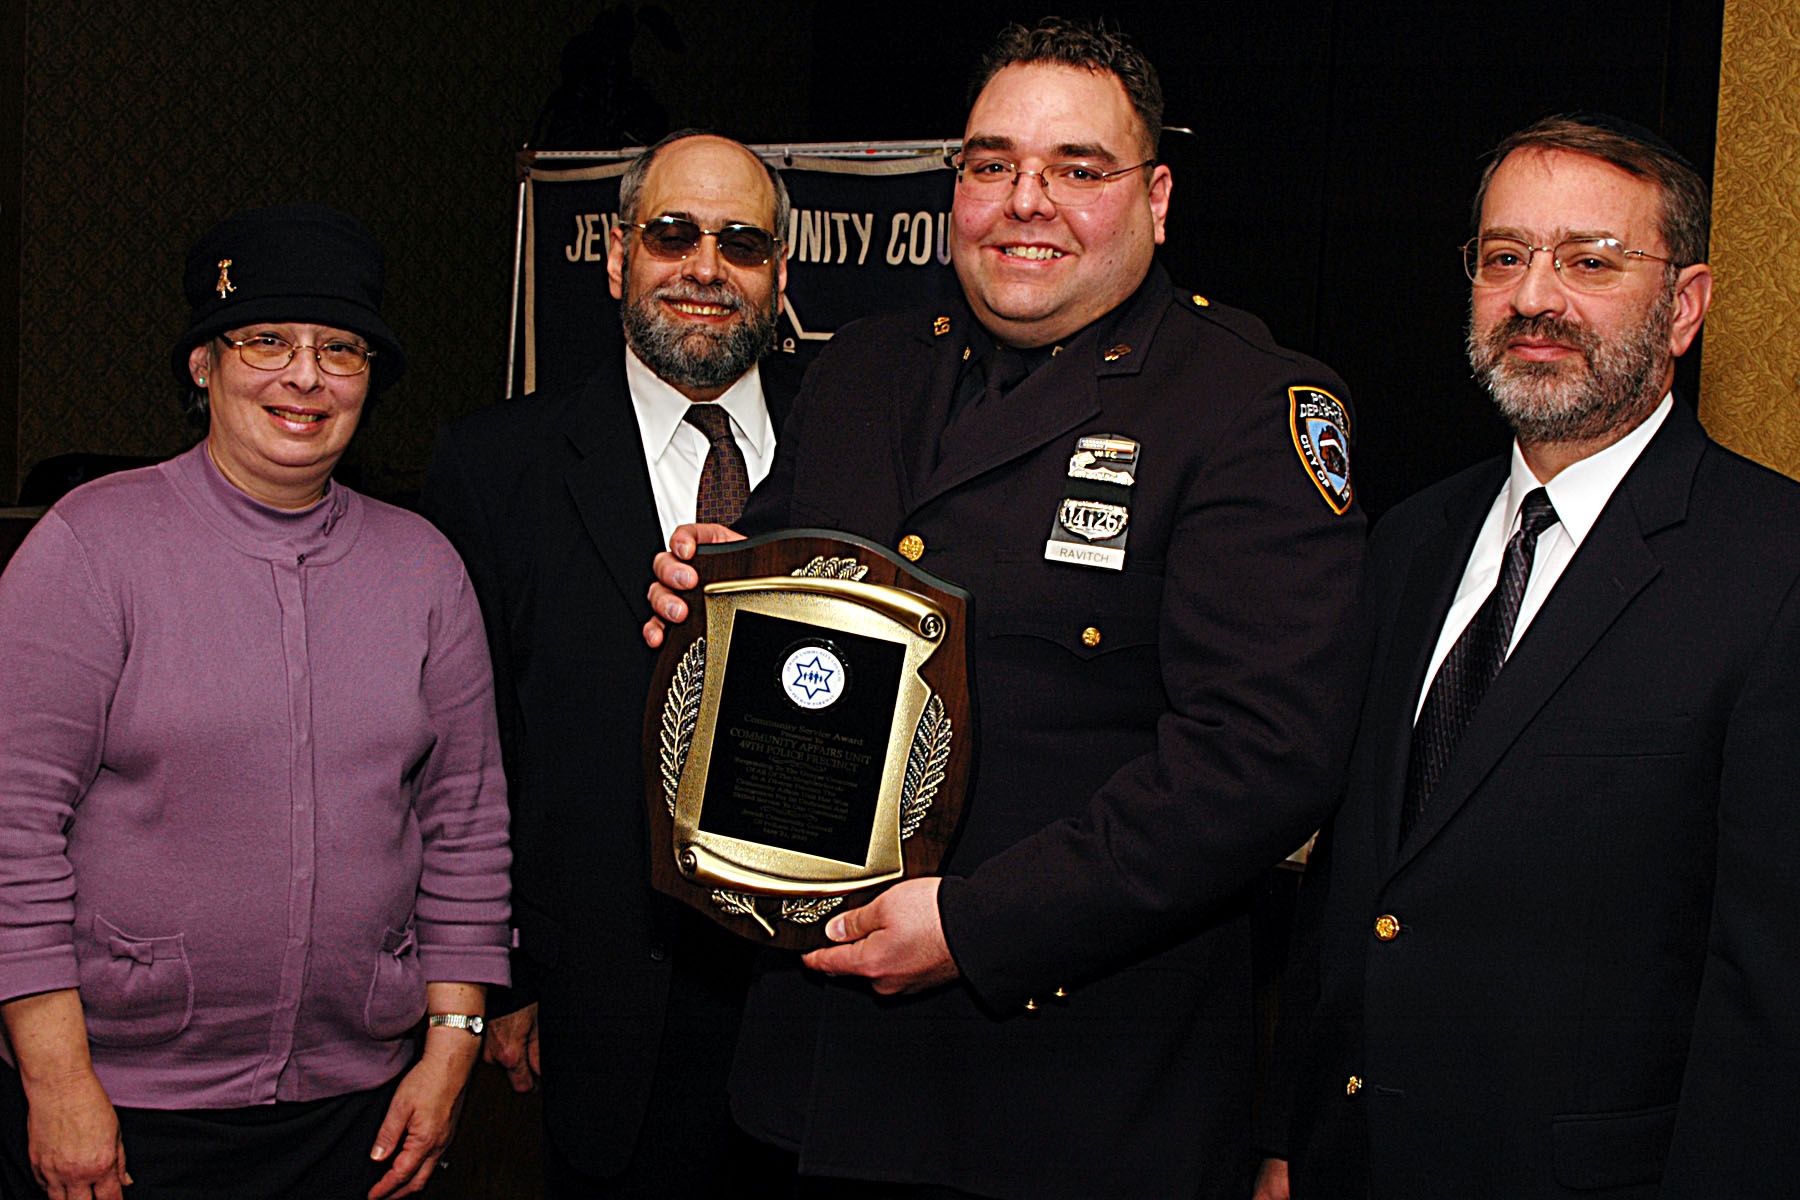 The Council presented its Community Service Award to the Community Affairs Unit of the 49th Police Precinct.